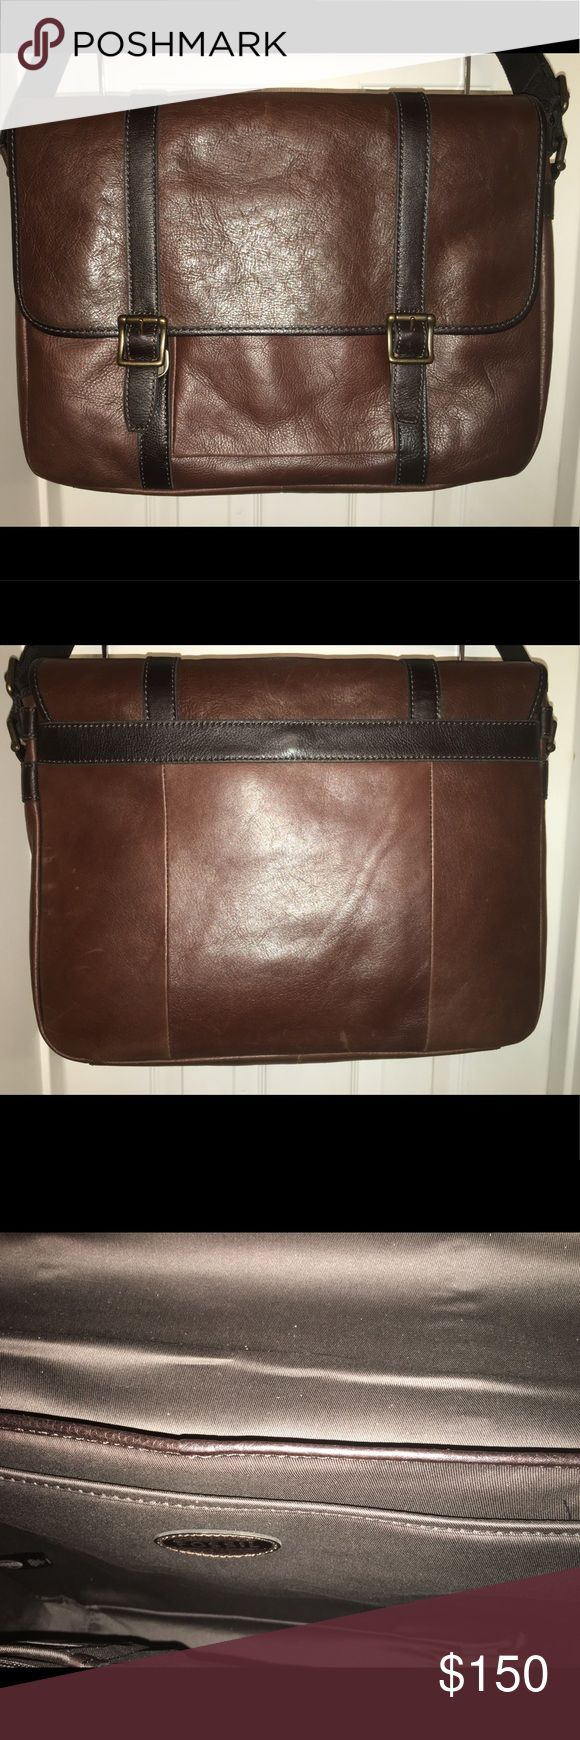 Leather messenger bag Two-toned brown leather messenger bag with outer magnetic closing pocket, inside laptop compartment. Includes dust bag. NEVER USED. Stored in dust bag. Fossil Bags Laptop Bags